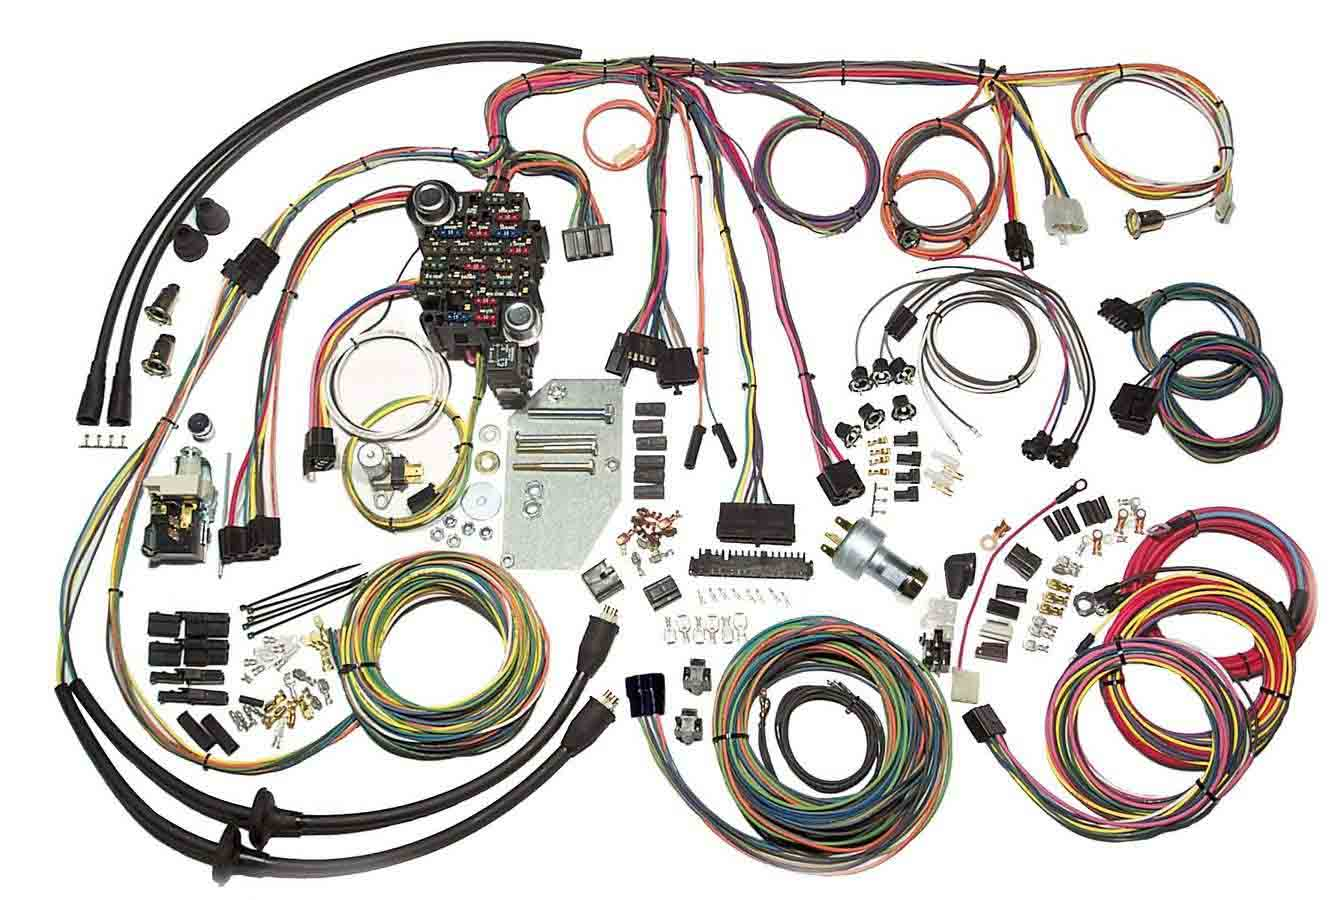 Shop for Street Rod :: Indy Auto Parts American Autowire Wiring Harness Impala on mustang wiring harness, kwik wire wiring harness, msd ignition wiring harness, classic car wiring harness, ididit wiring harness, bully dog wiring harness, vintage air wiring harness, battery tender wiring harness, custom autosound wiring harness, piaa wiring harness,